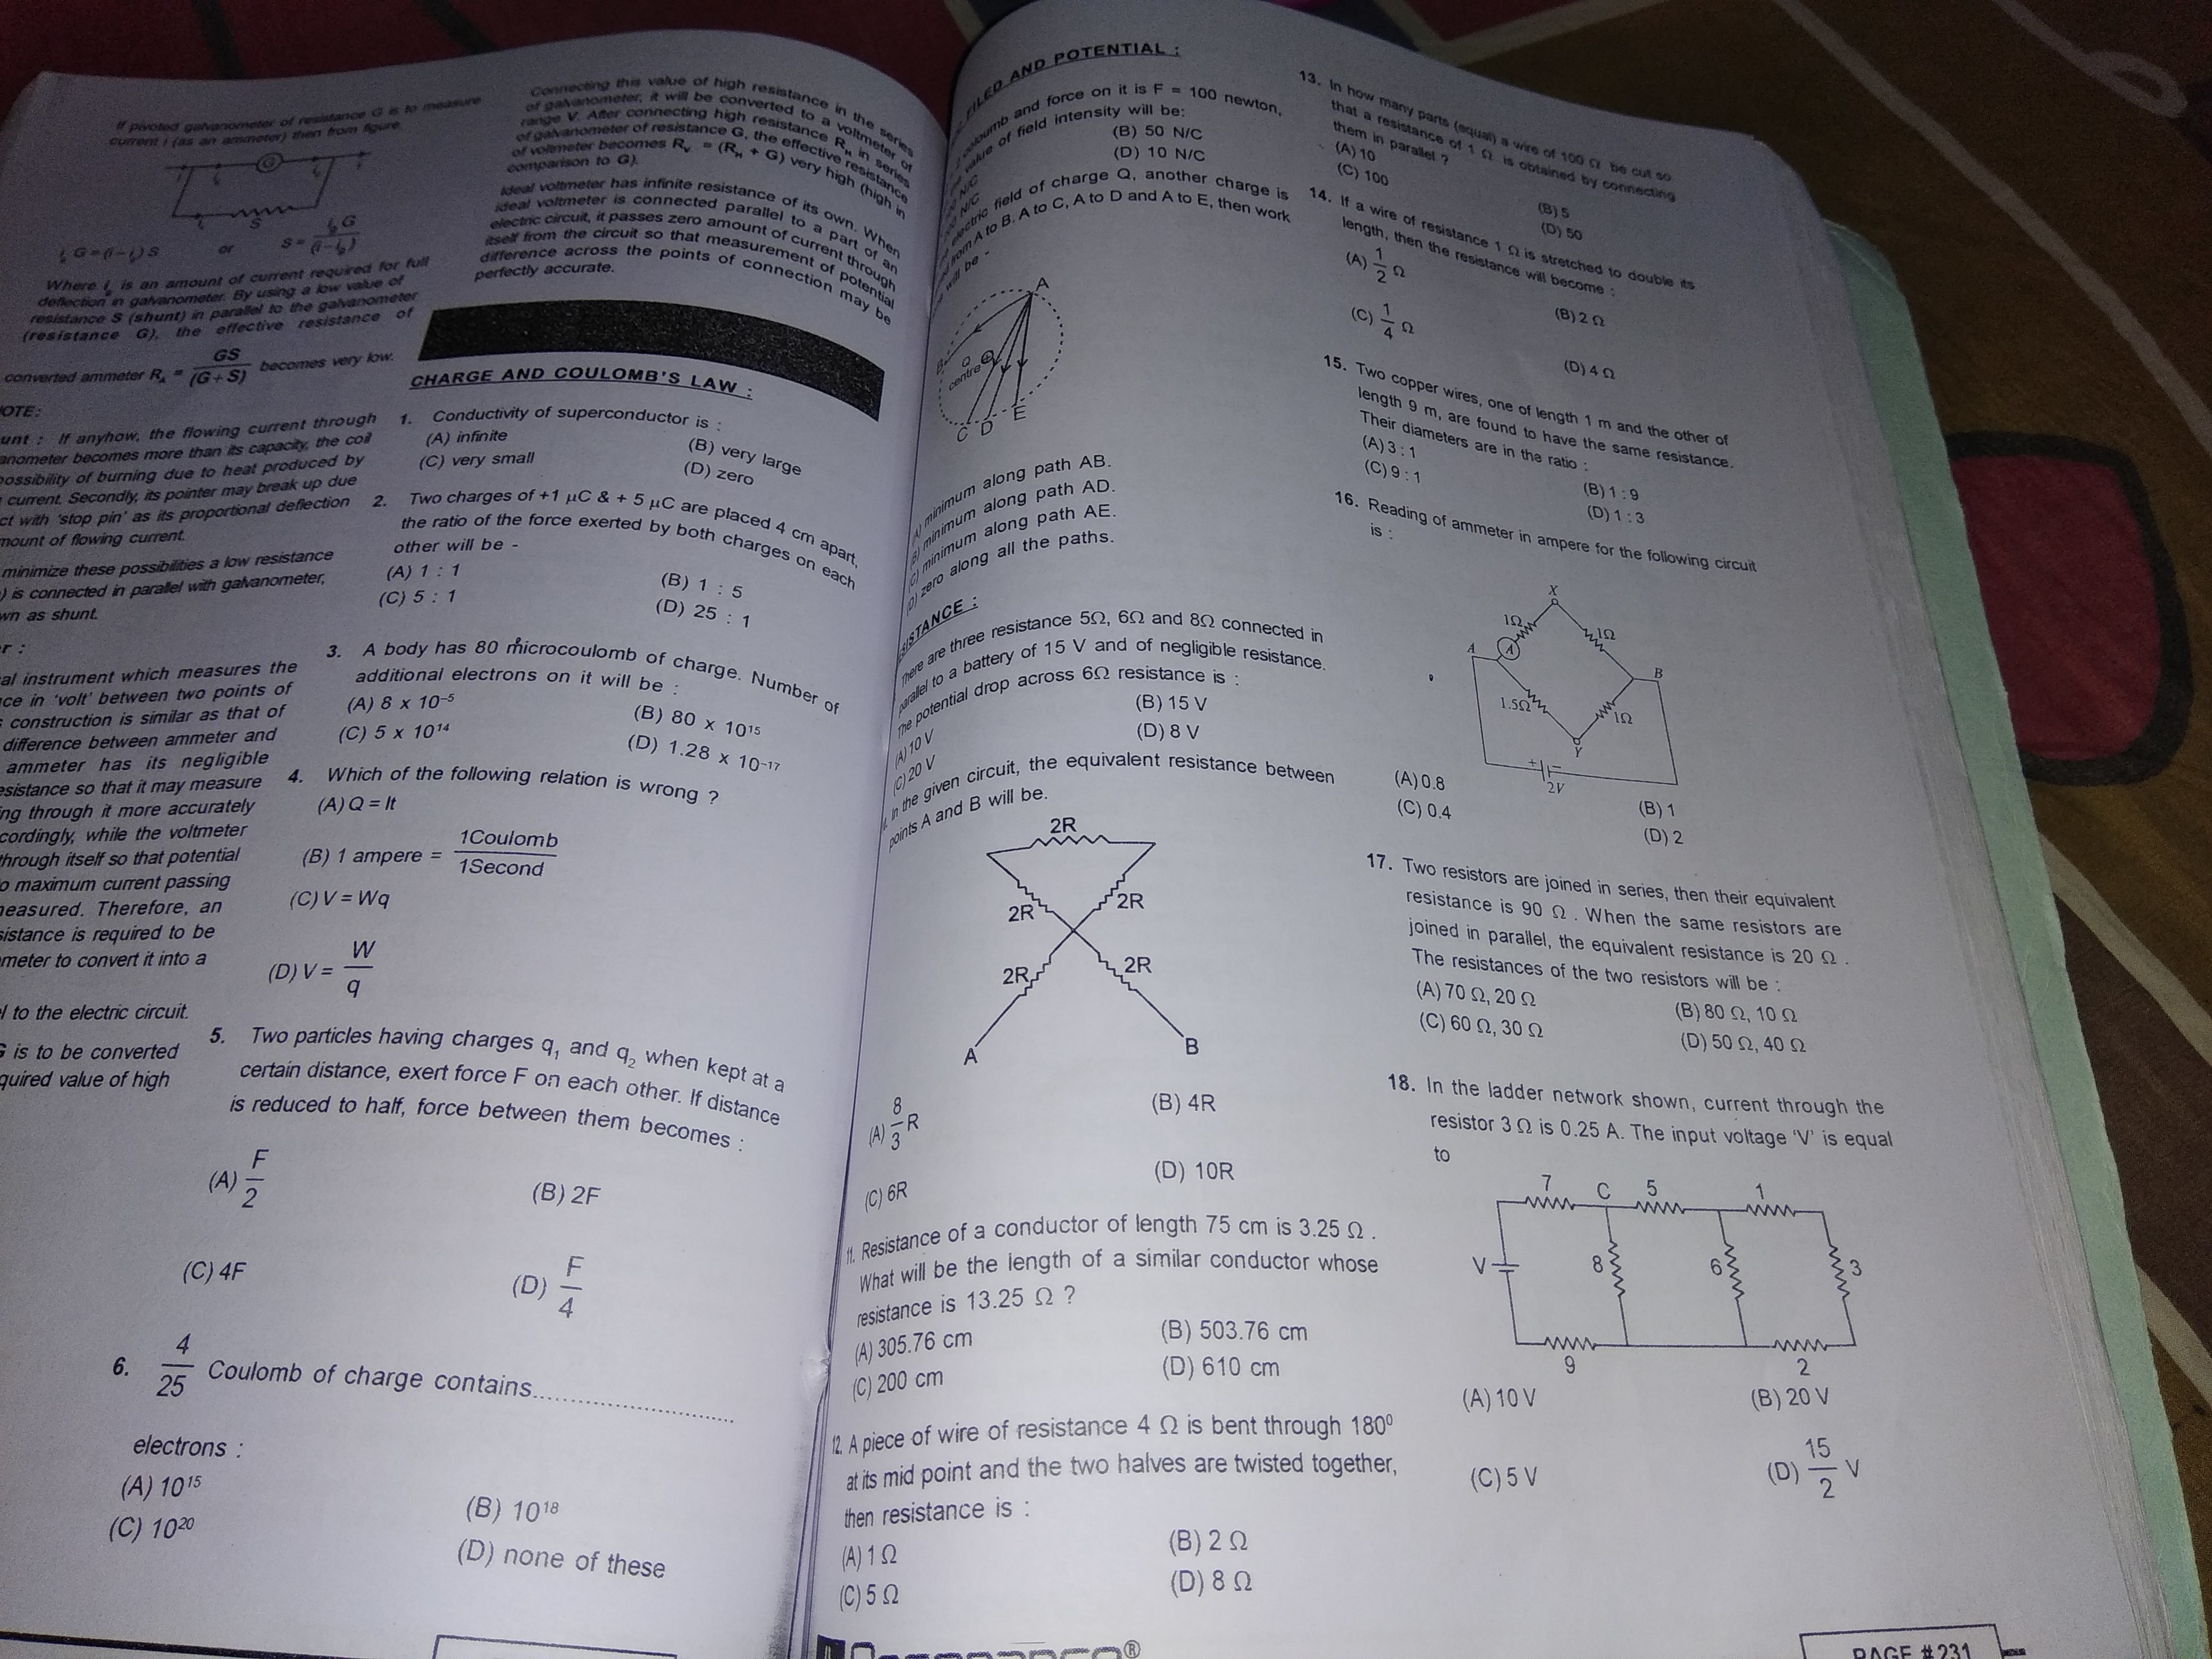 gave me some numericals from ch 1 electricity (physics